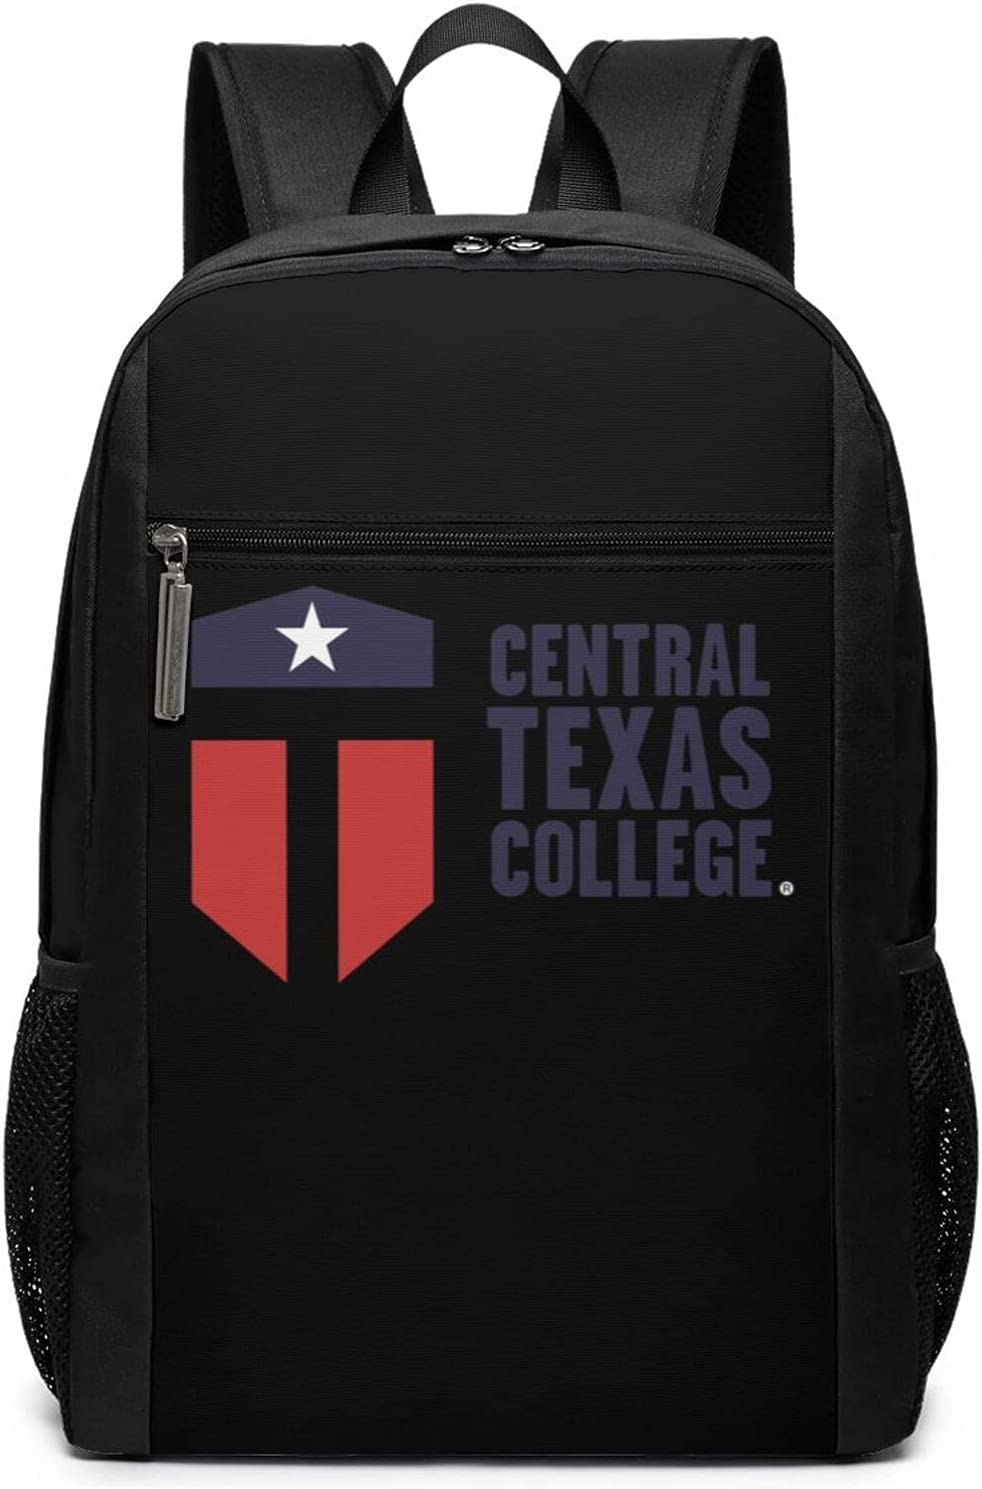 Central A Texas College Logo Backpack 35% OFF S Travel Unisex Print Gift Discount is also underway